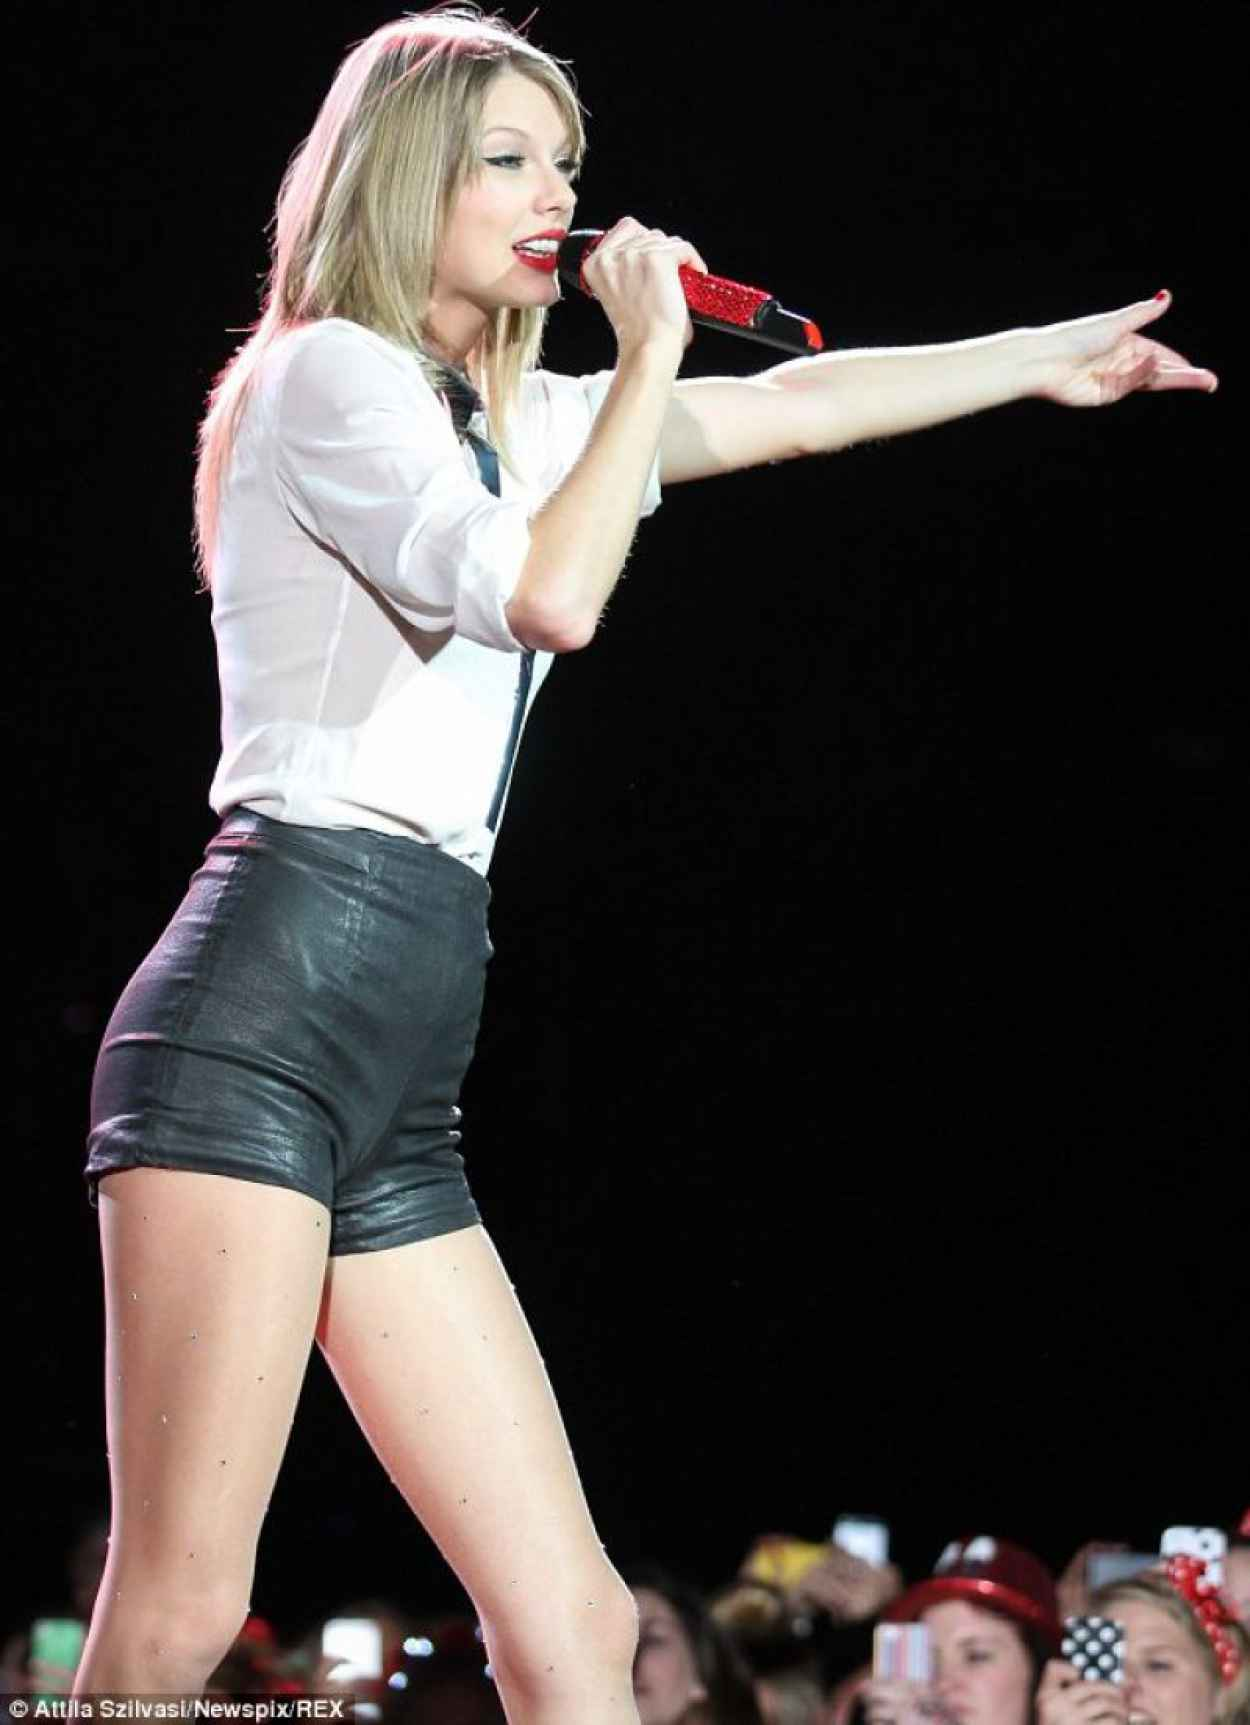 Taylor Swift in Leather Hotpants Performing in Concert in Sydney - December 2015-1